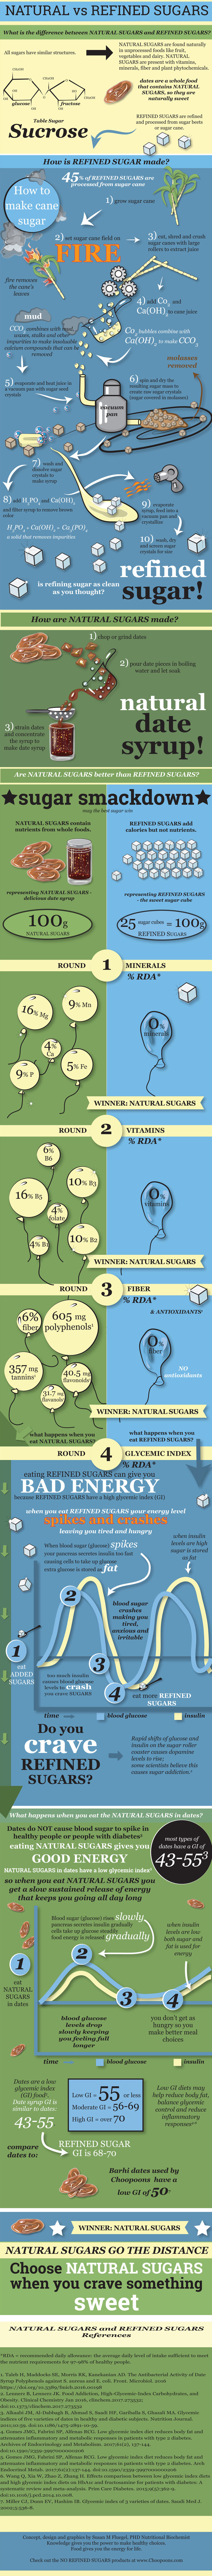 What is the difference between natural sugars and refined sugars? Natural sugars are found naturally in unprocessed foods like fruit, vegetables and dairy. Natural sugars are present with vitamins, minerals, fiber and plant phytochemicals. All sugars have similar structures. Dates are a whole food that contains natural sugars, so they are naturally sweet. Refined sugars are refined and processed from sugar beets or sugar cane. How is refined sugar made? 45% of refined sugars are processed from sugar cane. Process: 1) grow sugar cane. 2) set sugar cane field on fire. 3) cut, shred and crush sugar canes with large rollers to extract juice Co2 bubbles combine with Ca(OH)2 to make CCO3 4) add Co2 and Ca(OH)2to cane juice. 5) evaporate and heat juice in a vacuum pan with sugar seed crystals. 6) spin and dry the resulting sugar mass to create raw sugar crystals (sugar covered in molasses). 7) wash and dissolve sugar crystals to make syrup 8) add H3PO4 and Ca(OH)2 and filter syrup to remove brown color H3PO4 + Ca(OH)2 = Ca3(PO)4 a solid that removes impurities. 9) evaporate syrup, feed into a vacuum pan and crystallize. 10) wash, dry and screen sugar crystals for size. Is refining sugar as clean as you thought?  How are natural sugars made?  1) chop or grind dates  2) pour date pieces in boiling water and let soak 3) strain dates and concentrate the syrup to make date syrup natural date syrup! Are natural sugars better than refined sugars? Sugar Smackdown: May the best sugar win. Natural sugars contain nutrients from whole foods. Refined sugars add calories but not nutrients. Representing natural sugars: delicious date syrup 100g natural sugars. Representing refined sugars: the sweet sugar cube. 25 sugar cubes = 100g refined sugars. Round 1: Minerals. The winner is natural sugars with 16% Mg, 9% Mn, 4% Ca, 5% Fe, 9% P.  Refined sugars have 0% minerals. Round 2: Vitamins. The winner is natural sugars with 6% B6, 10% B3, 16% B5, 4% folate, 4% B1, 10% B2. Refined sugars have 0% vitamins. Round 3: Fiber. The winner is natural sugars with 6% fiber, 605 mg polyphenols, 357 mg tannins, 31.7 mg flavanols, 40.5 mg flavonoids. Refined sugars have 0% fiber and no antioxidants. Round 4: Glycemic index. Eating refined sugars can give you bad energy because refined sugars have a high glycemic index (GI). When you eat refined sugars, your energy level spikes and crashes leaving you tired and hungry. When blood sugar (glucose) spikes, your pancreas secretes insulin too fast causing cells to take up glucose. Extra glucose is stored as fat.  When insulin levels are high, sugar is stored as fat. Blood sugar crashes making you tired, anxious and irritable. Too much insulin cause blood sugar levels to crash. You crave sugars. Rapid shifts of glucose and insulin on the sugar roller coaster causes dopamine levels to rise; some scientists believe this causes sugar addiction. What happens when you eat the natural sugars in dates? Dates do Not cause blood sugar to spike in healthy people or people with diabetes. Eating natural sugars gives you good energy. Natural sugars in dates have a low glycemic index. SO when you eat natural sugars, you get a slow sustained release of energy that keeps you going all day long. Most types of dates have a GI of 43-55^3. Blood sugar (glucose) rises slowly. Pancreas secretes insulin gradually. Cells take up glucose steadily. 1. Eat natural sugars in dates.  2. Food energy is released gradually. When insulin levels are low, both sugar and fat is used for energy.  3. Blood glucose levels drop slowly keeping you feeling full longer. 4. You don't get as hungry so you make better meal choices. Dates are a low glycemic index (GI) food. Date syrup GI is similar to dates: 43-55. Compares to: Refined sugar GI is 68-70. Barhi dates used by Choopoons have a low GI of 50^7. Low GI diets may help reduce body fat, balance glycemic control and reduce inflammatory responses. WINNER: Natural Sugars. Natural sugars go the distance. Choose natural sugars when you crave something sweet. References. *RDA = recommended daily allowance: the average daily level of intake sufficient to meet the nutrient requirements for 97-98% of healthy people. 1. Taleb H, Maddocks SE, Morris RK, Kanekanian AD. The Antibacterial Activity of Date Syrup Polyphenols against S. aureus and E. coli. Front. Microbiol. 2016 https://doi.org/10.3389/fmicb.2016.00198 2. Lennerz B, Lennerz JK. Food Addiction, High-Glycemic-Index Carbohydrates, and Obesity. Clinical Chemistry Jan 2016, clinchem.2017.273532; doi:10.1373/clinchem.2017.273532 3. Alkaabi JM, Al-Dabbagh B, Ahmad S, Saadi HF, Gariballa S, Ghazali MA. Glycemic indices of five varieties of dates in healthy and diabetic subjects. Nutrition Journal. 2011;10:59. doi:10.1186/1475-2891-10-59. 4. Gomes JMG, Fabrini SP, Alfenas RCG. Low glycemic index diet reduces body fat and attenuates inflammatory and metabolic responses in patients with type 2 diabetes. Archives of Endocrinology and Metabolism. 2017;61(2), 137-144. doi:10.1590/2359-3997000000206 5. Gomes JMG, Fabrini SP, Alfenas RCG. Low glycemic index diet reduces body fat and attenuates inflammatory and metabolic responses in patients with type 2 diabetes. Arch Endocrinol Metab. 2017;61(2):137-144. doi:10.1590/2359-3997000000206 6. Wang Q, Xia W, Zhao Z, Zhang H. Effects comparison between low glycemic index diets and high glycemic index diets on HbA1c and fructosamine for patients with diabetes: A systematic review and meta-analysis. Prim Care Diabetes. 2015;9(5):362-9. doi:10.1016/j.pcd.2014.10.008. 7. Miller CJ, Dunn EV, Hashim IB. Glycemic index of 3 varieties of dates. Saudi Med J. 2002;5:536-8. Concept, design and graphics by Susan M Fluegel, PHD Nutritional Biochemist Knowledge gives you the power to make healthy choices. Food gives you the energy for life. Check out the NO REFINED SUGARS products at www.Choopoons.com